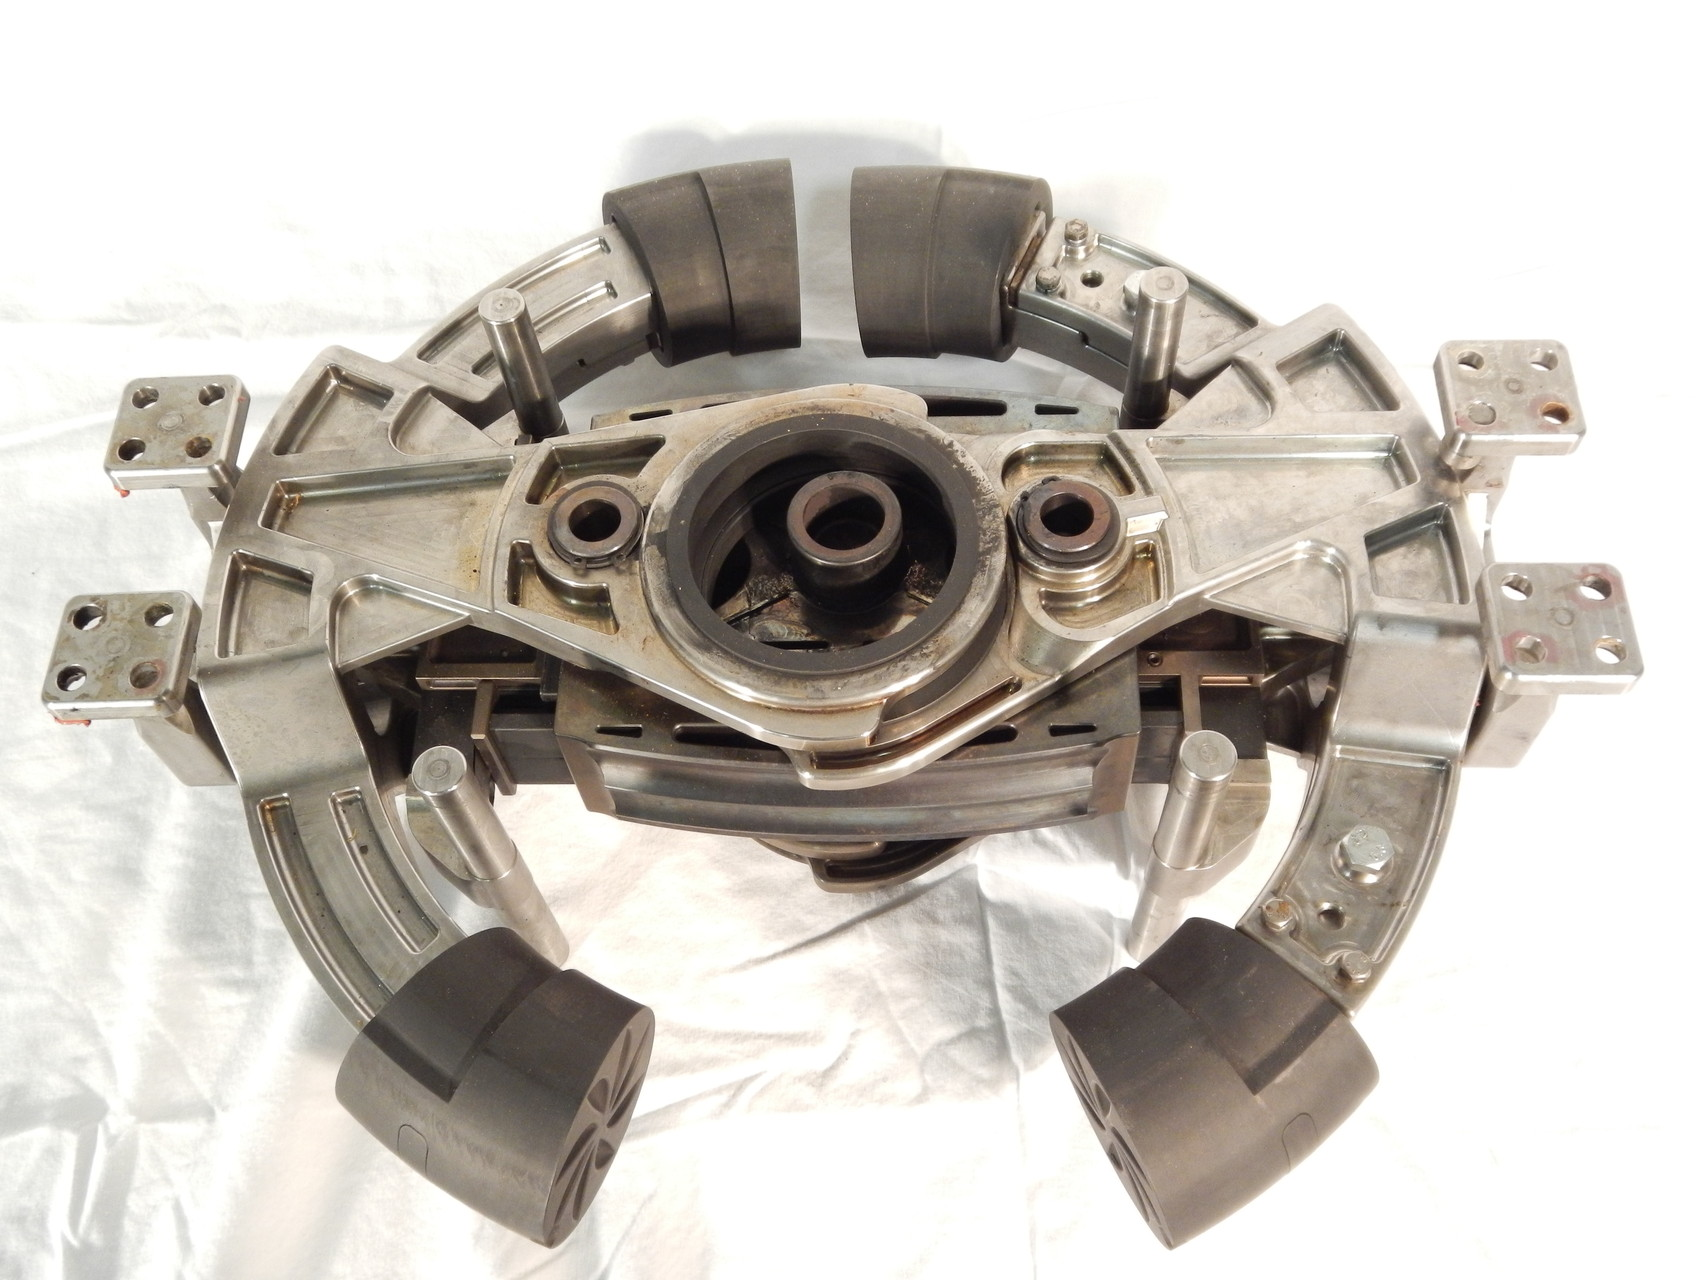 CHB-Evo. Internal Combustion Engine Top View